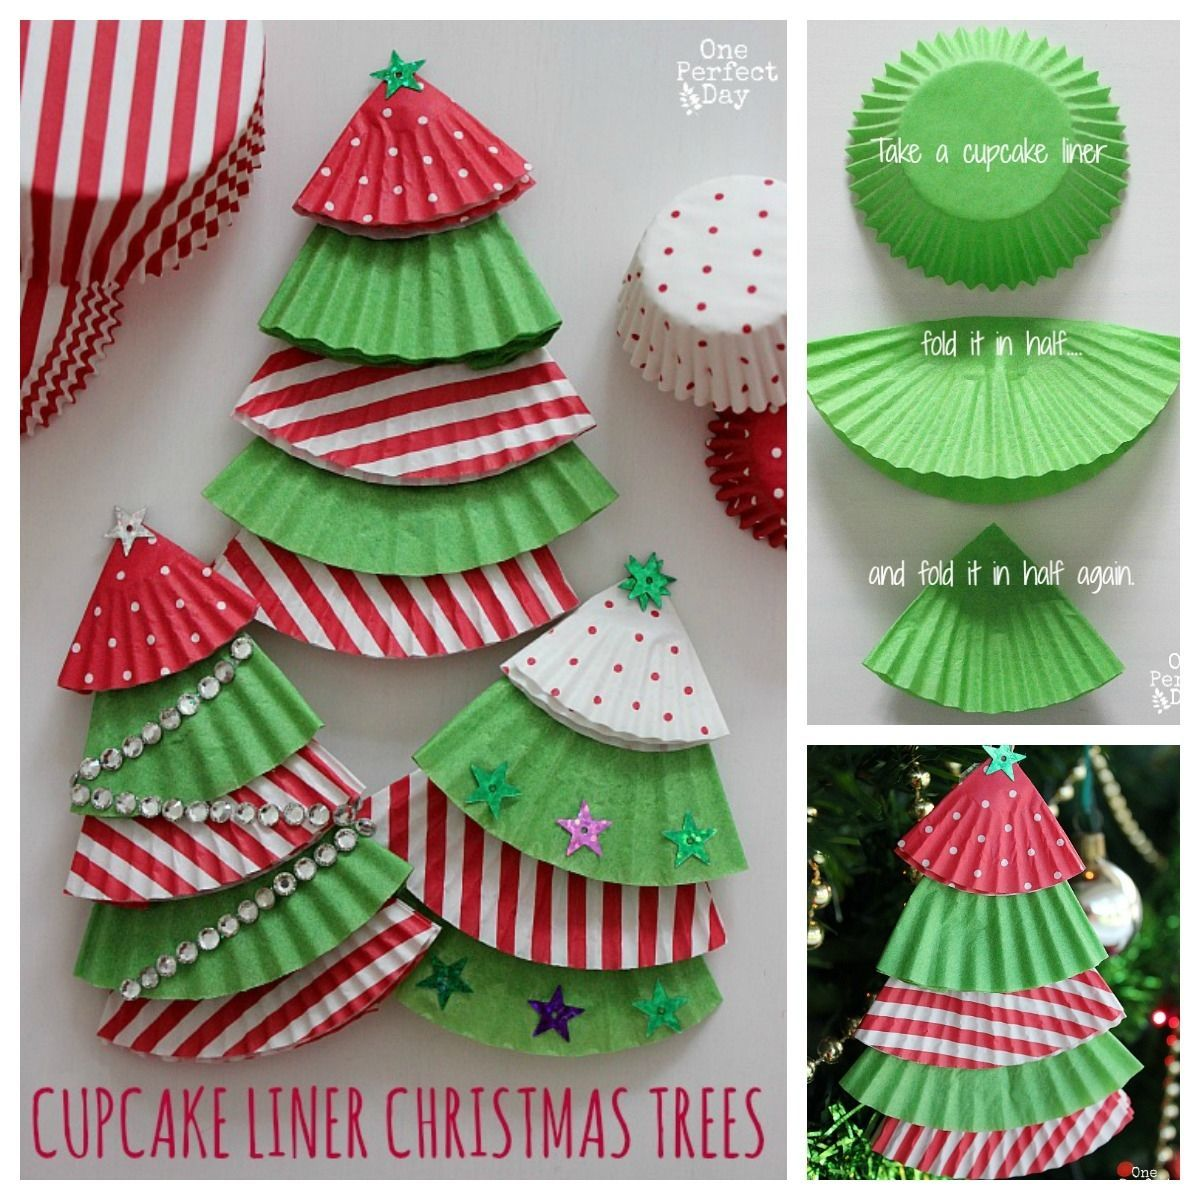 Cupcake Liner Christmas Trees Christmas Party Crafts Christmas Crafts Decorations Christmas Cards Handmade